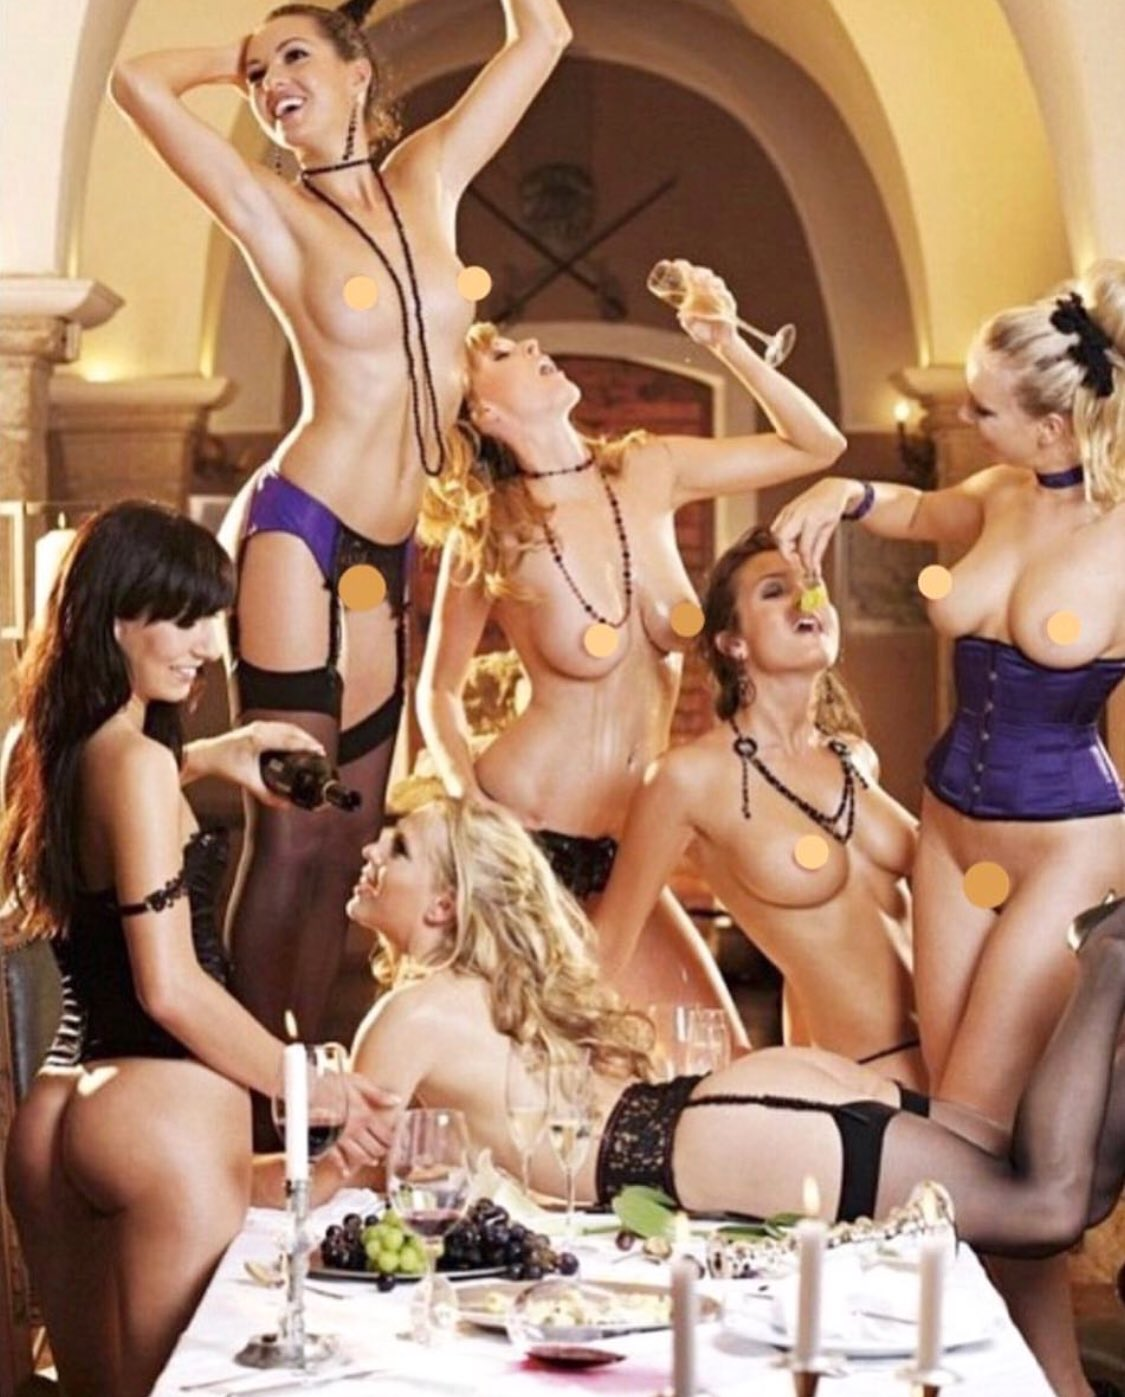 Best Playboy TV pictures (2)